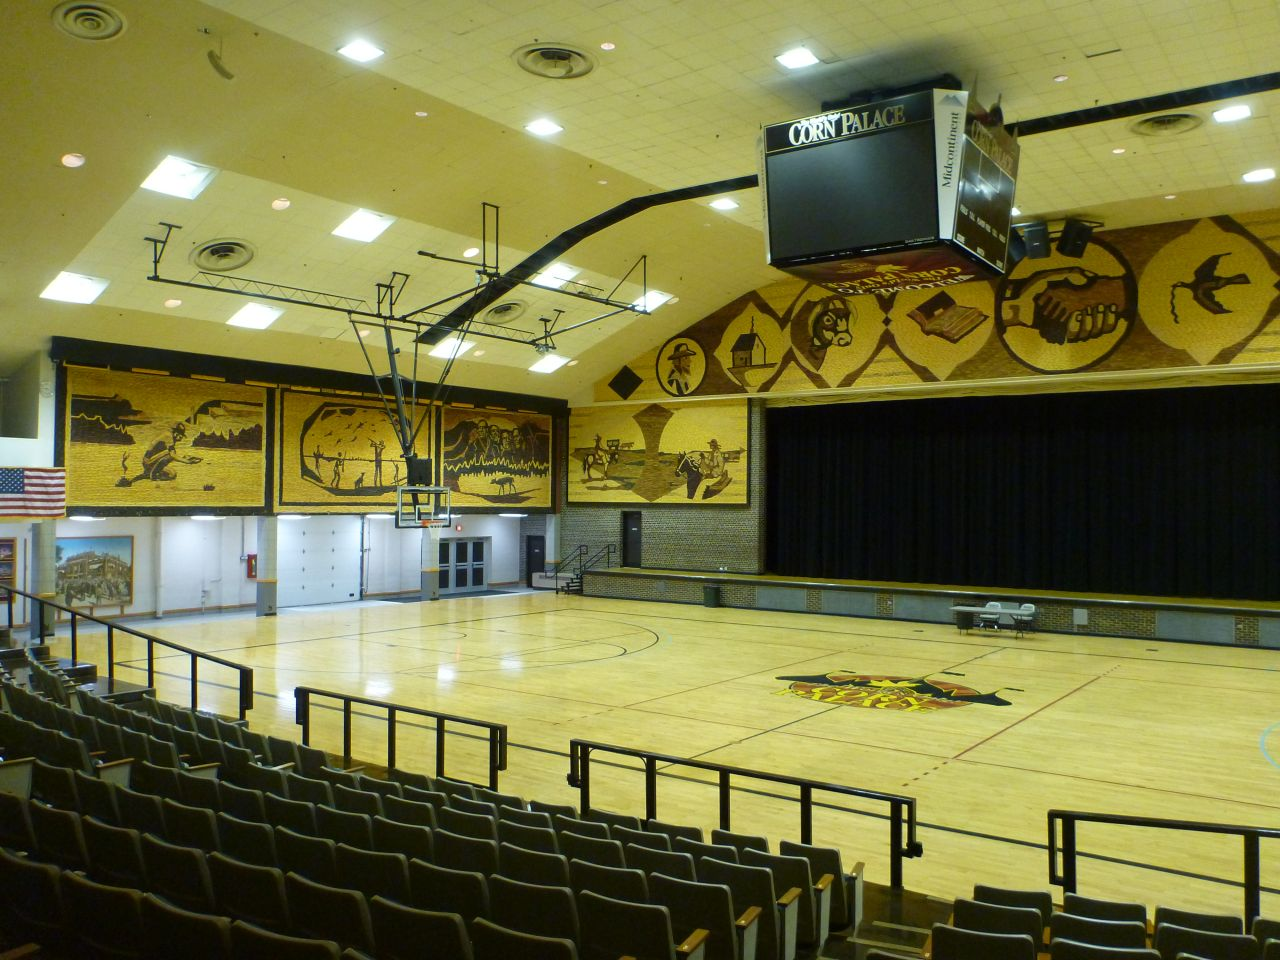 The Inside Of The Corn Palace Is Decorated Too.